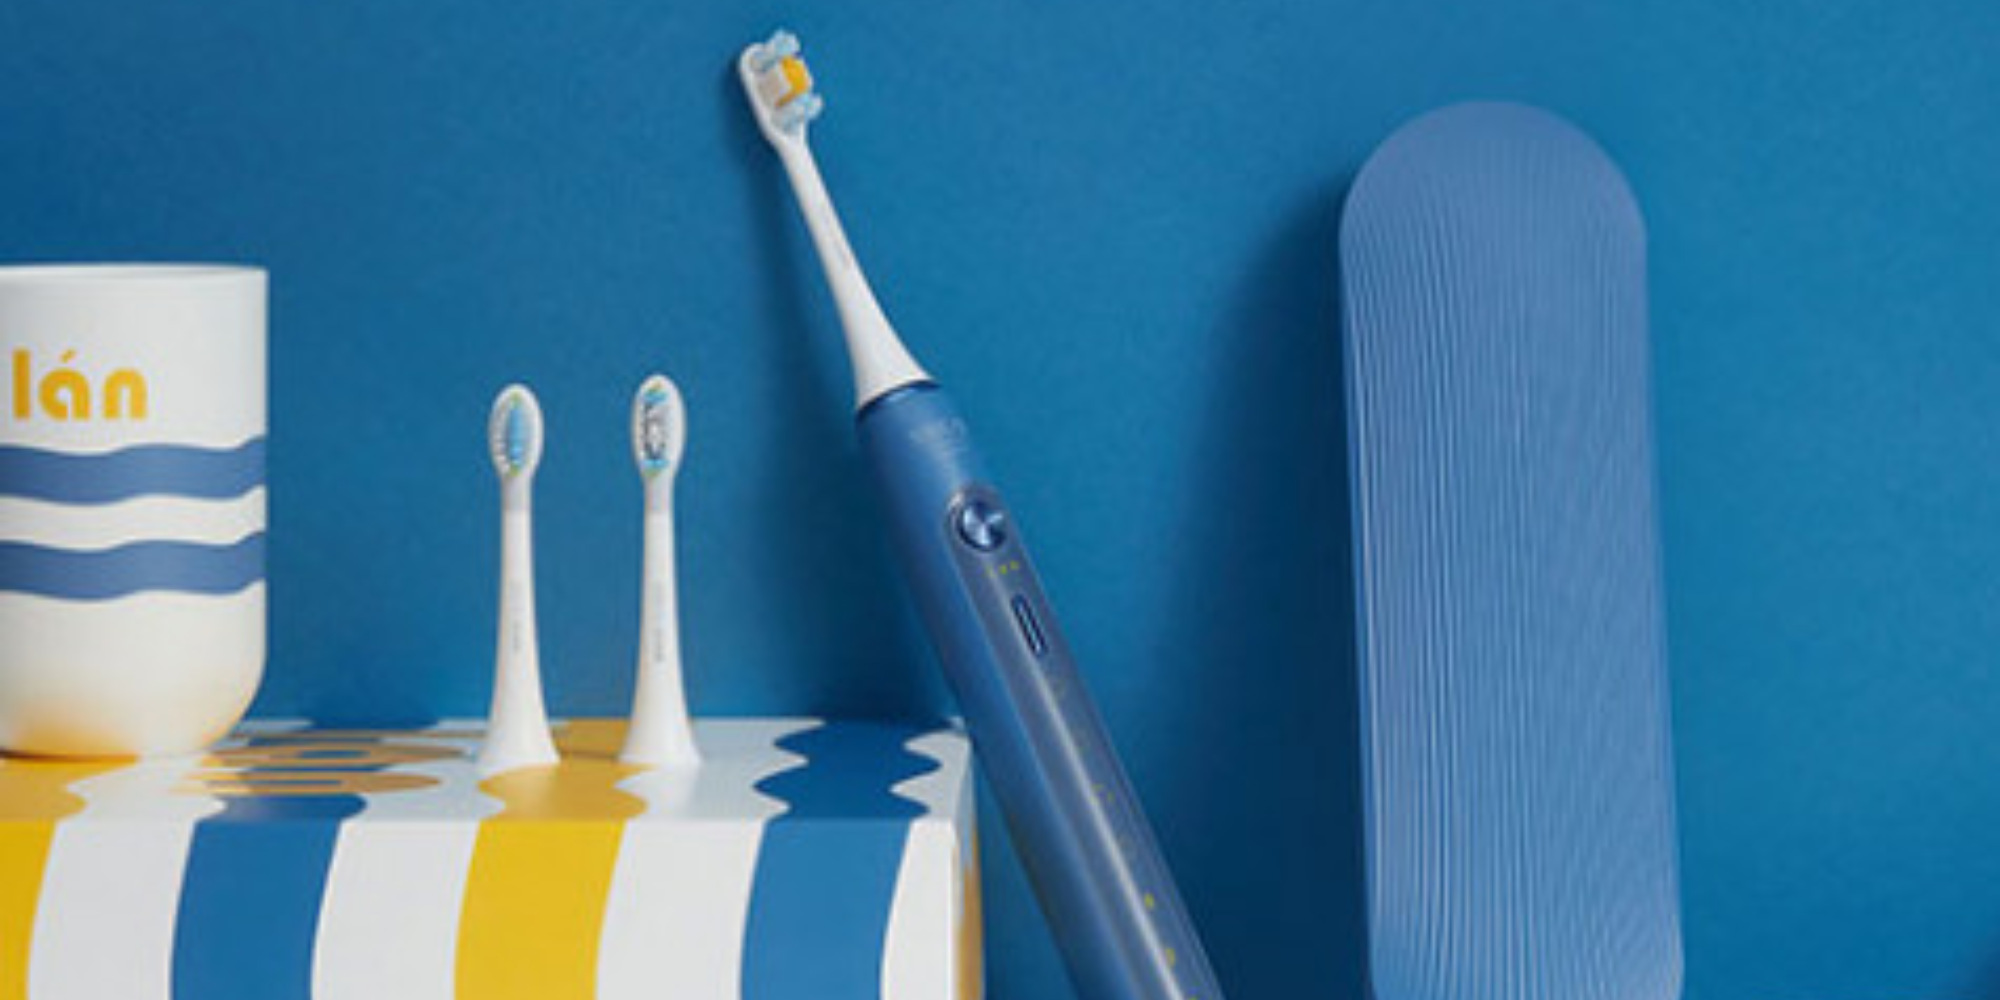 SOOCAS Electric Toothbrush X5